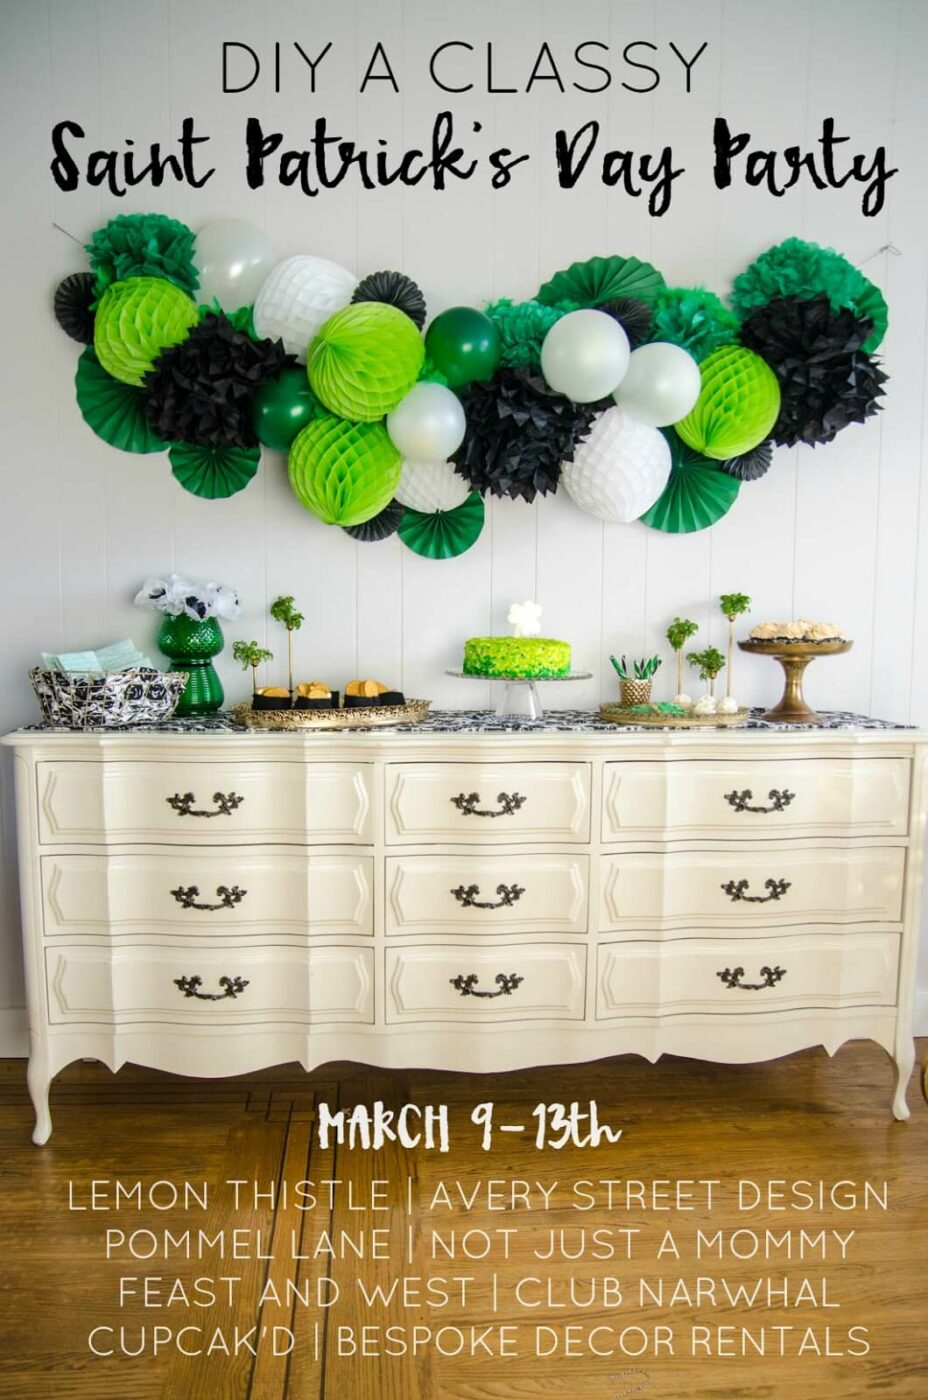 St. Patrick's Day Party Decor for Adults